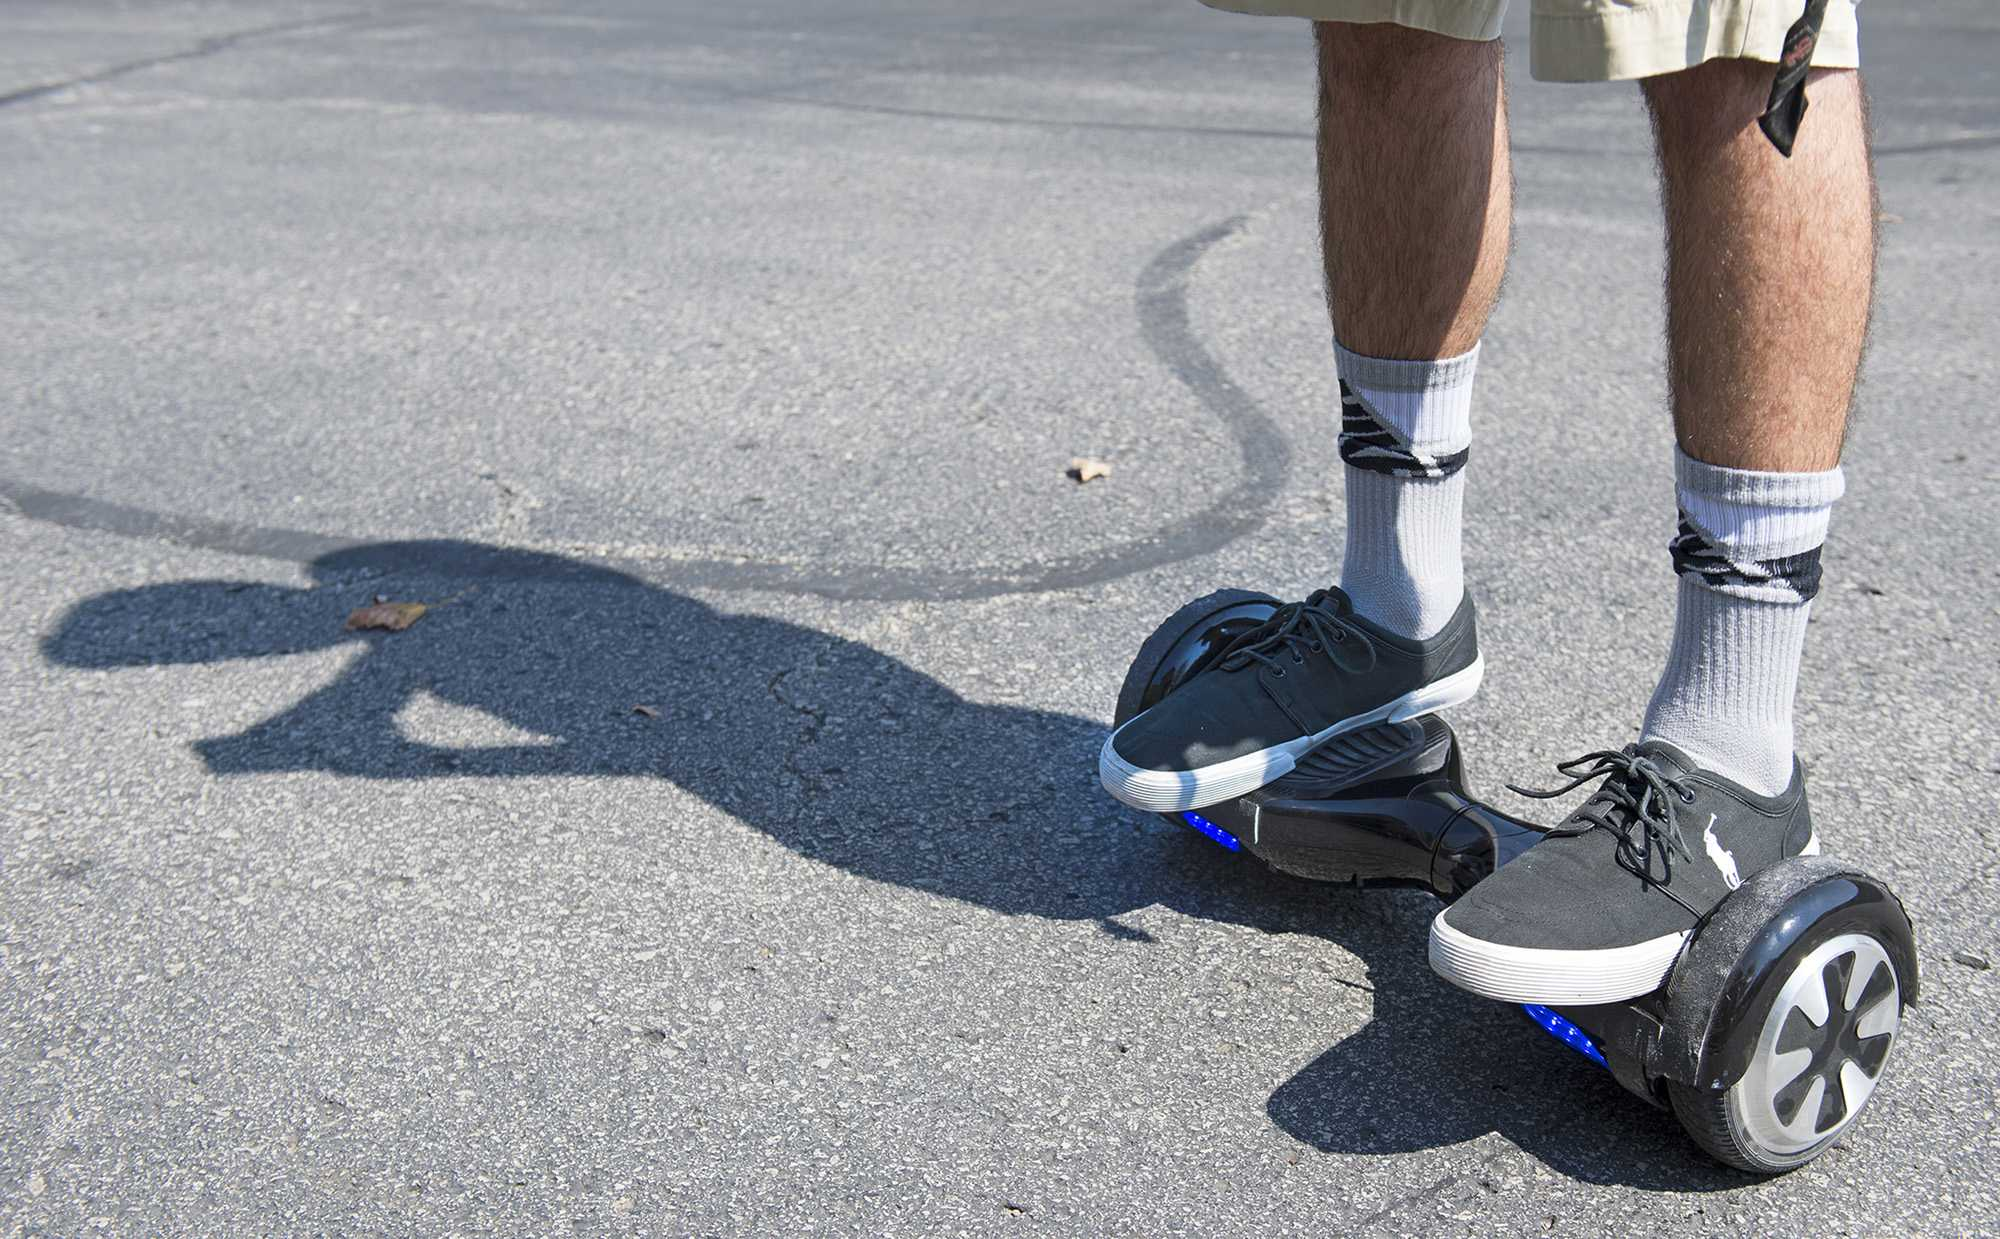 Logan Meis, 20, balances on his hover board outside his apartment complex in Overland Park, Kan., on Friday, Sept. 4, 2015. Meis purchased the personal transportation device for about $330 online. (Tammy Ljungblad/Kansas City Star/TNS)